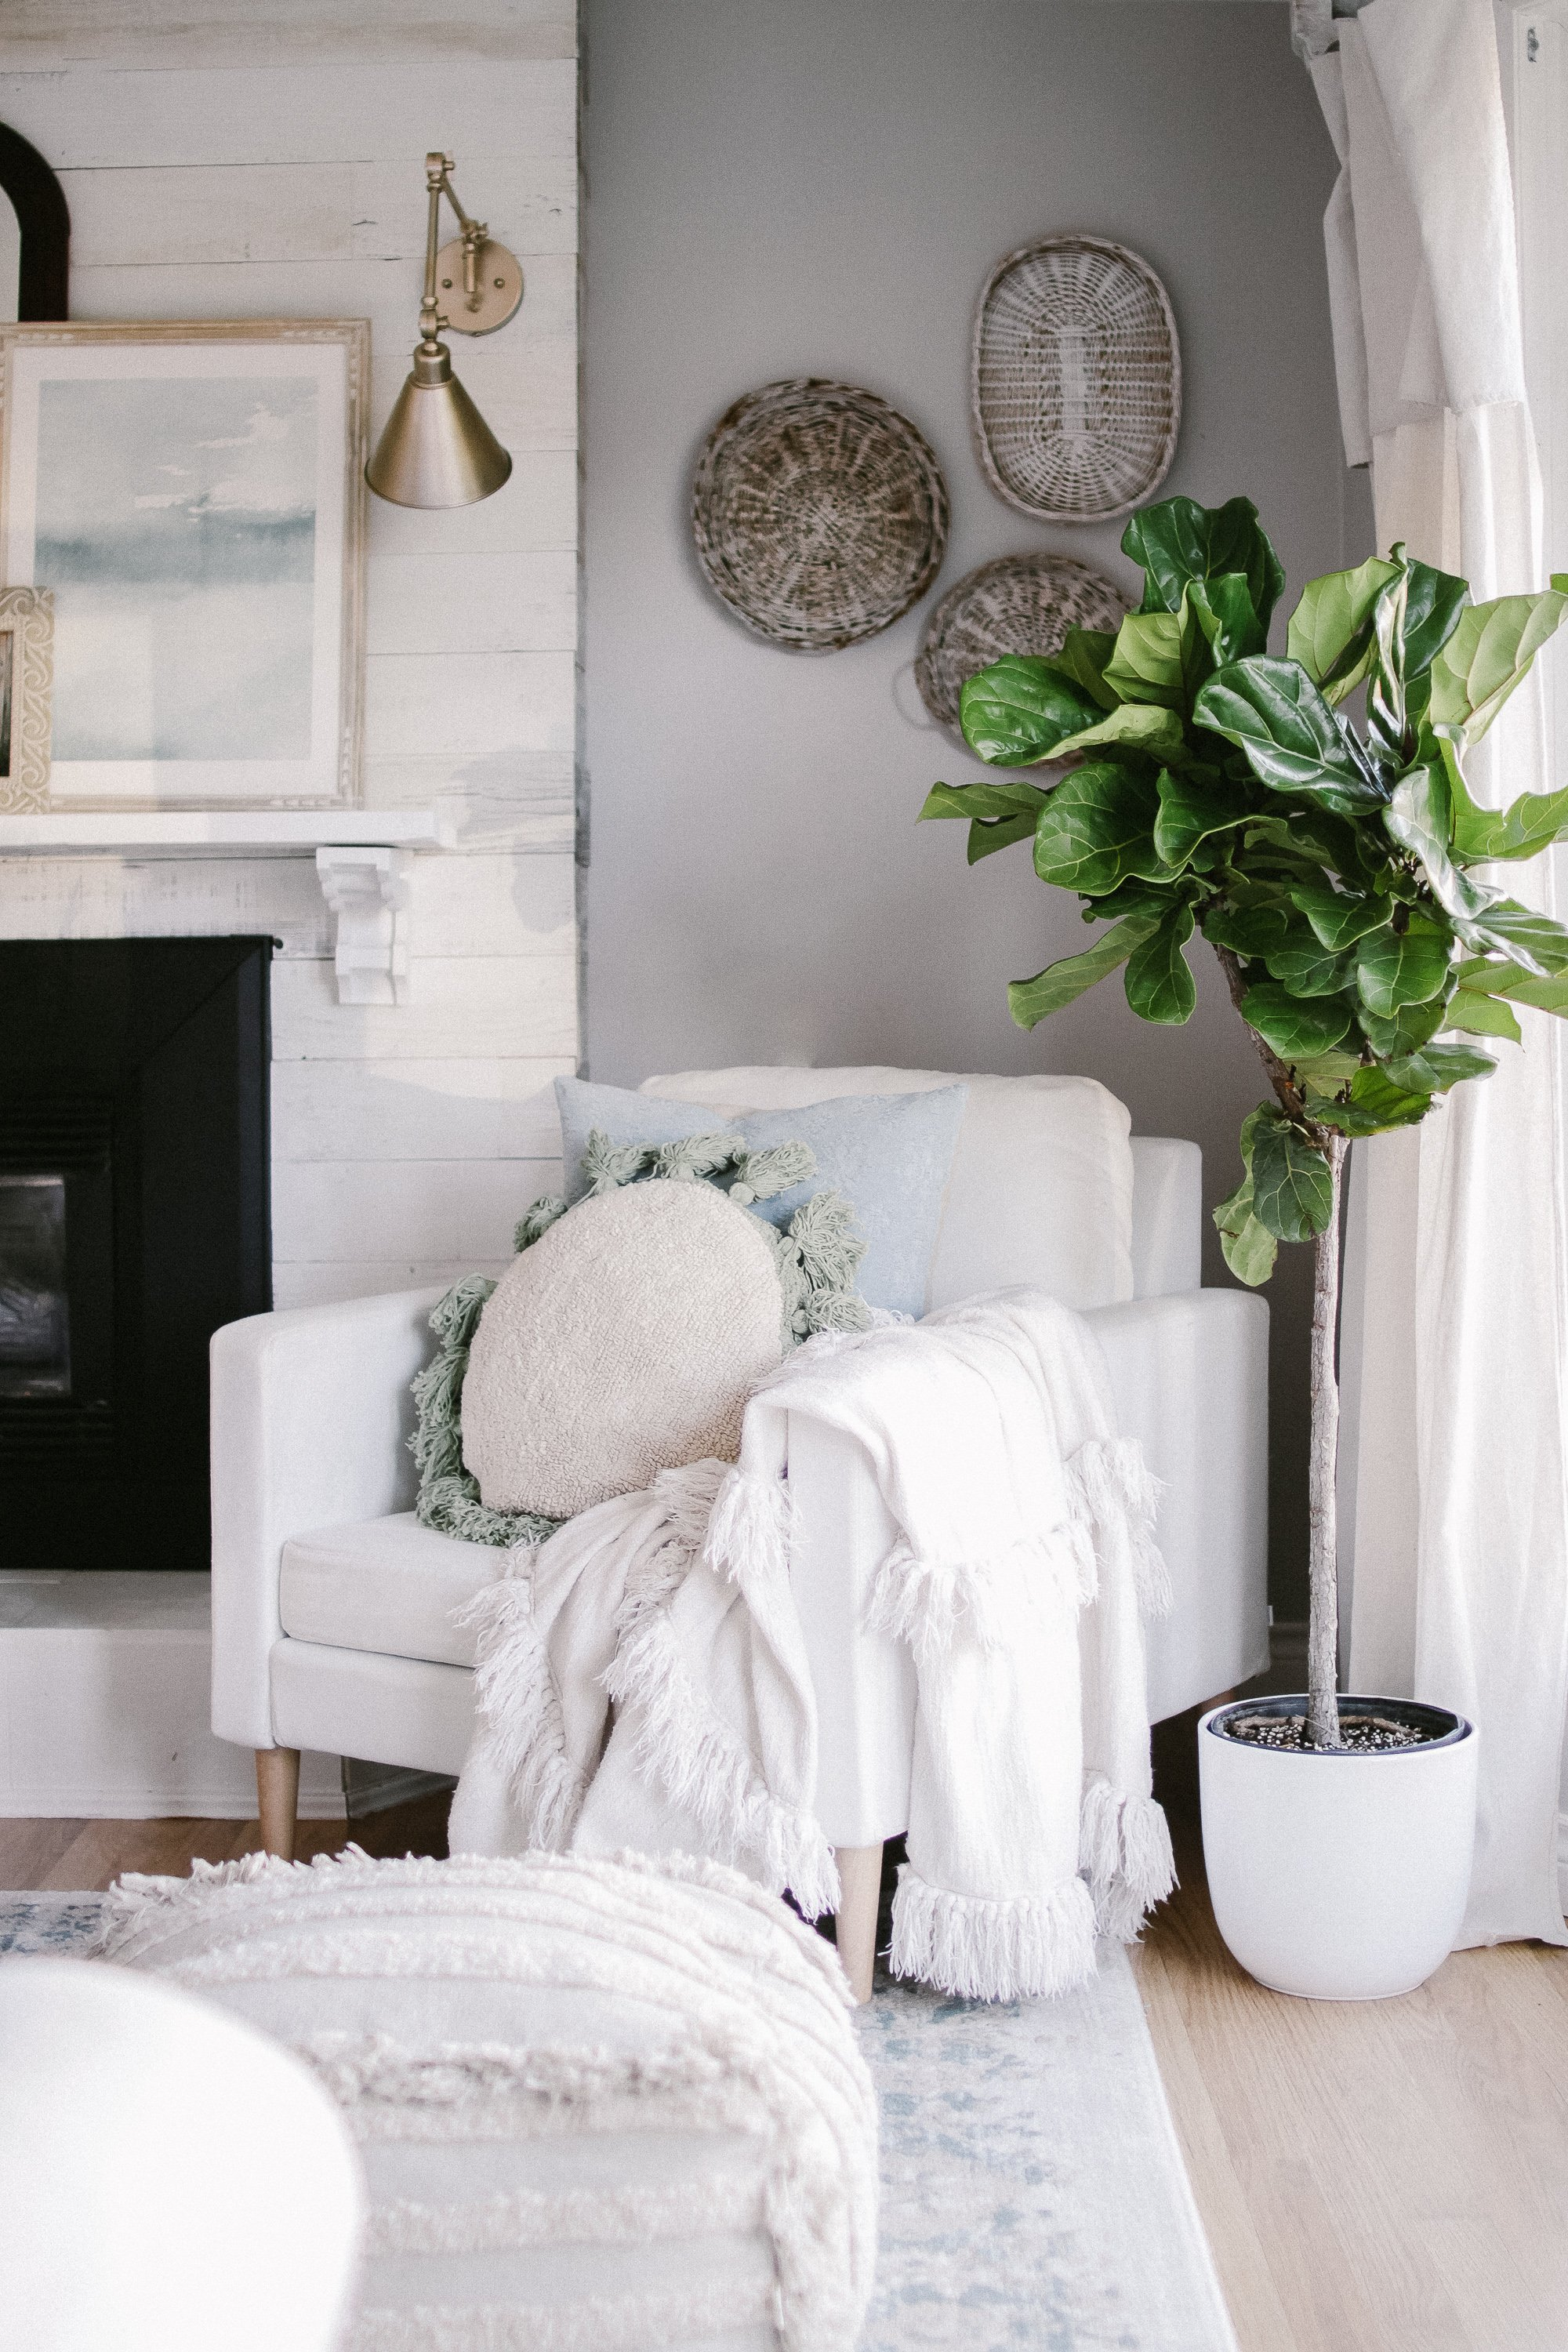 How TO Care For Fiddle Leaf Fig Trees - Meet Lola our Fiddle